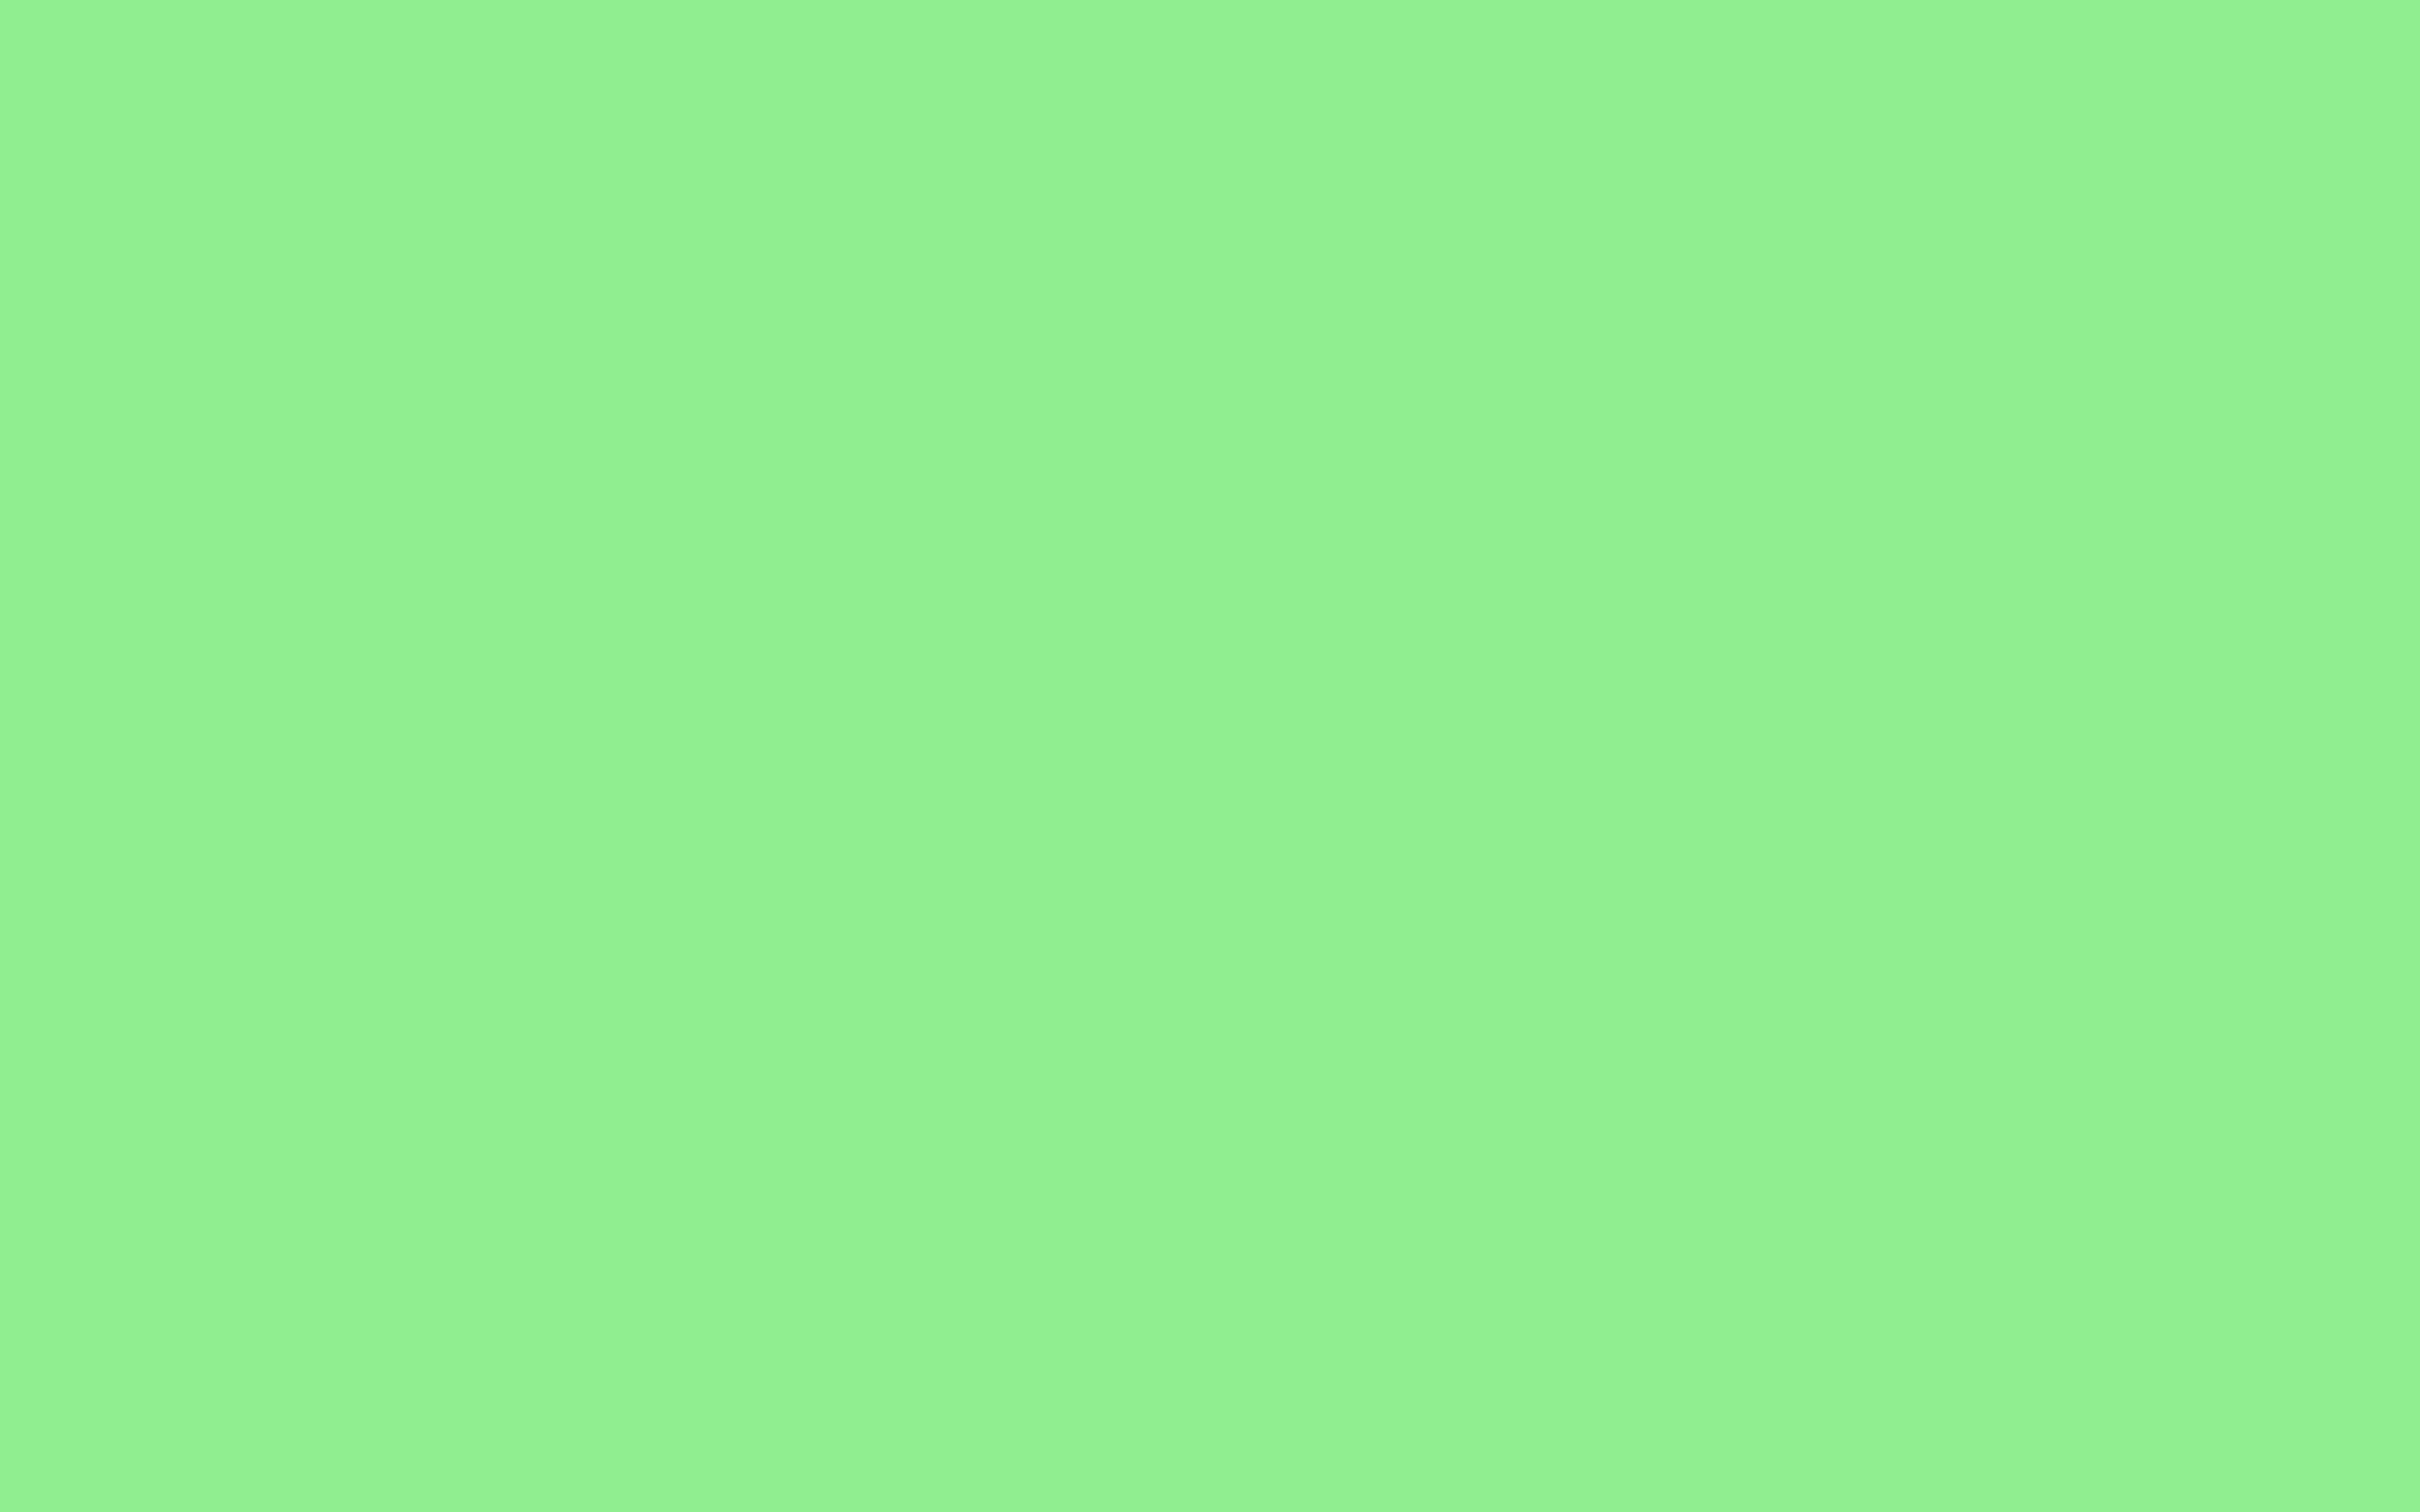 2560x1600 resolution Light Green solid color background view and 2560x1600